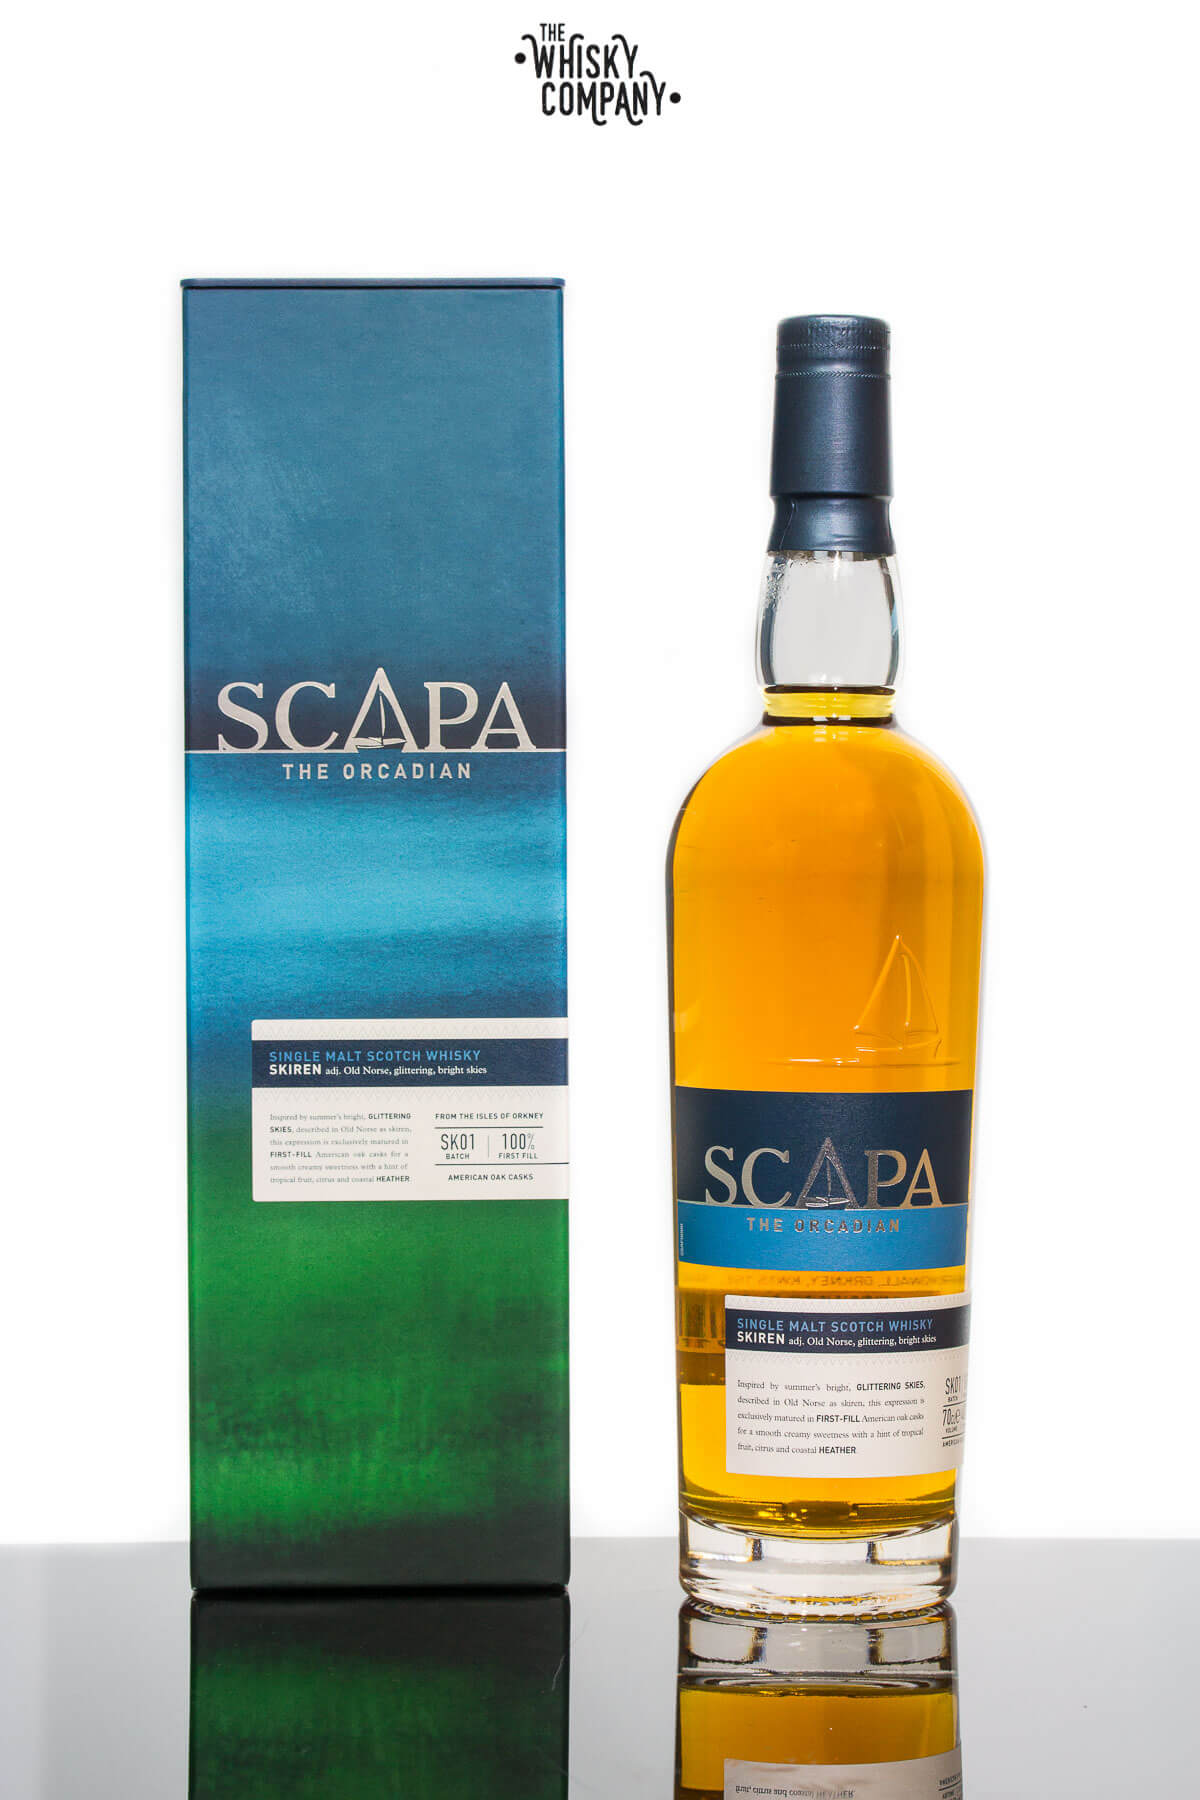 Scapa The Orcadian Skiren Island Single Malt Scotch Whisky